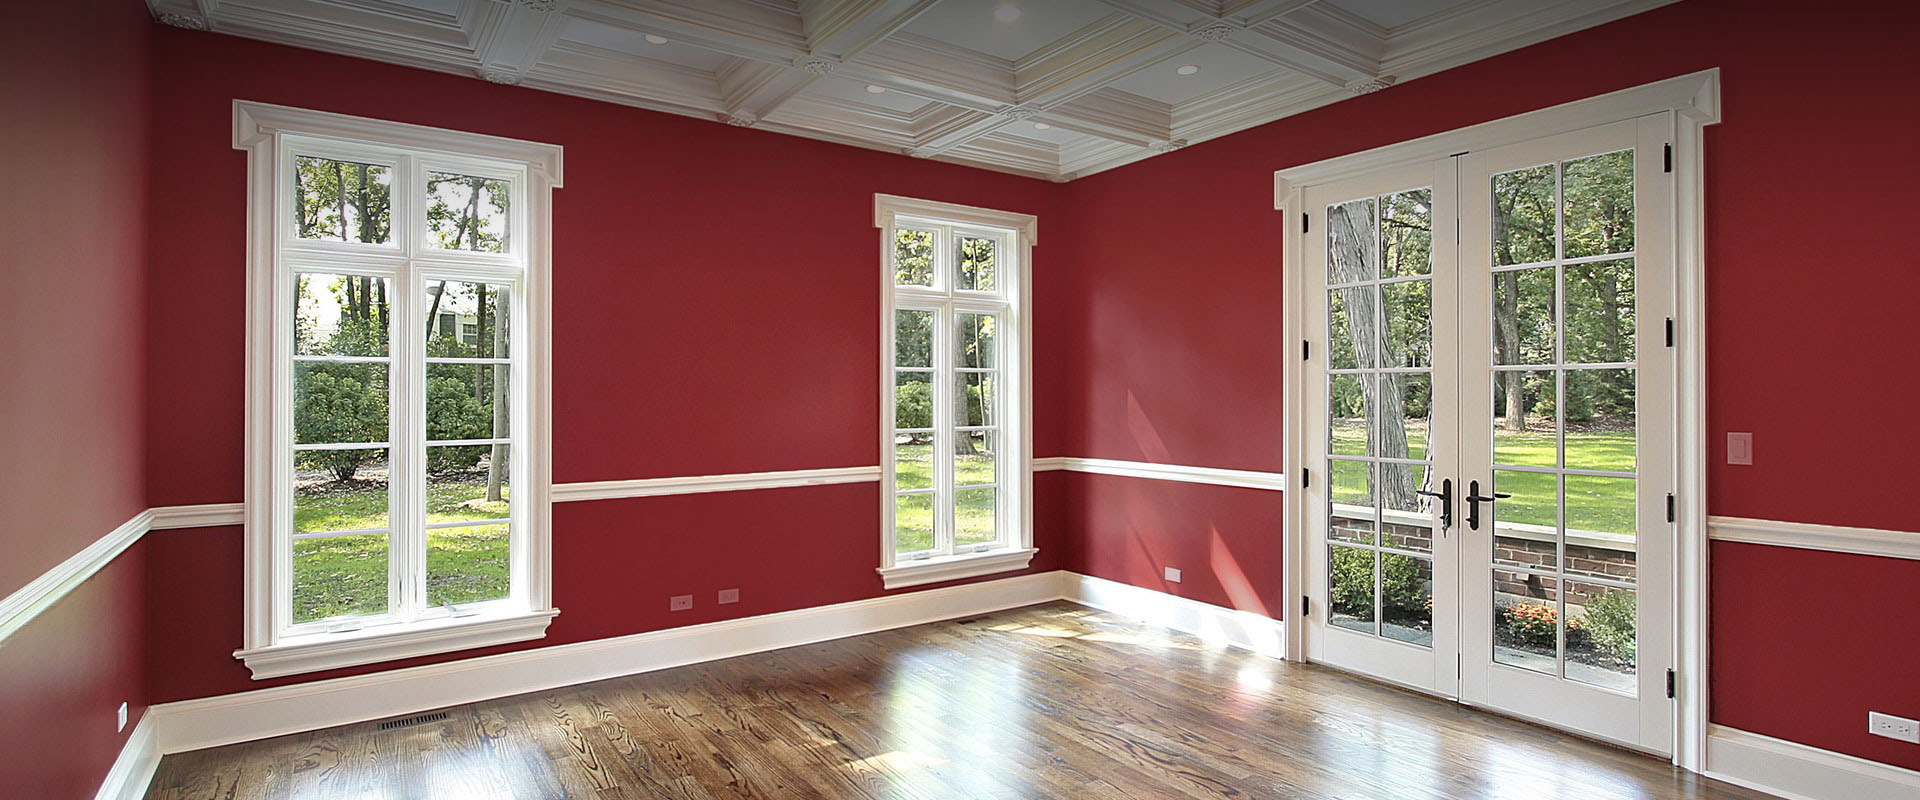 Professional interior painting in Nanaimo BC